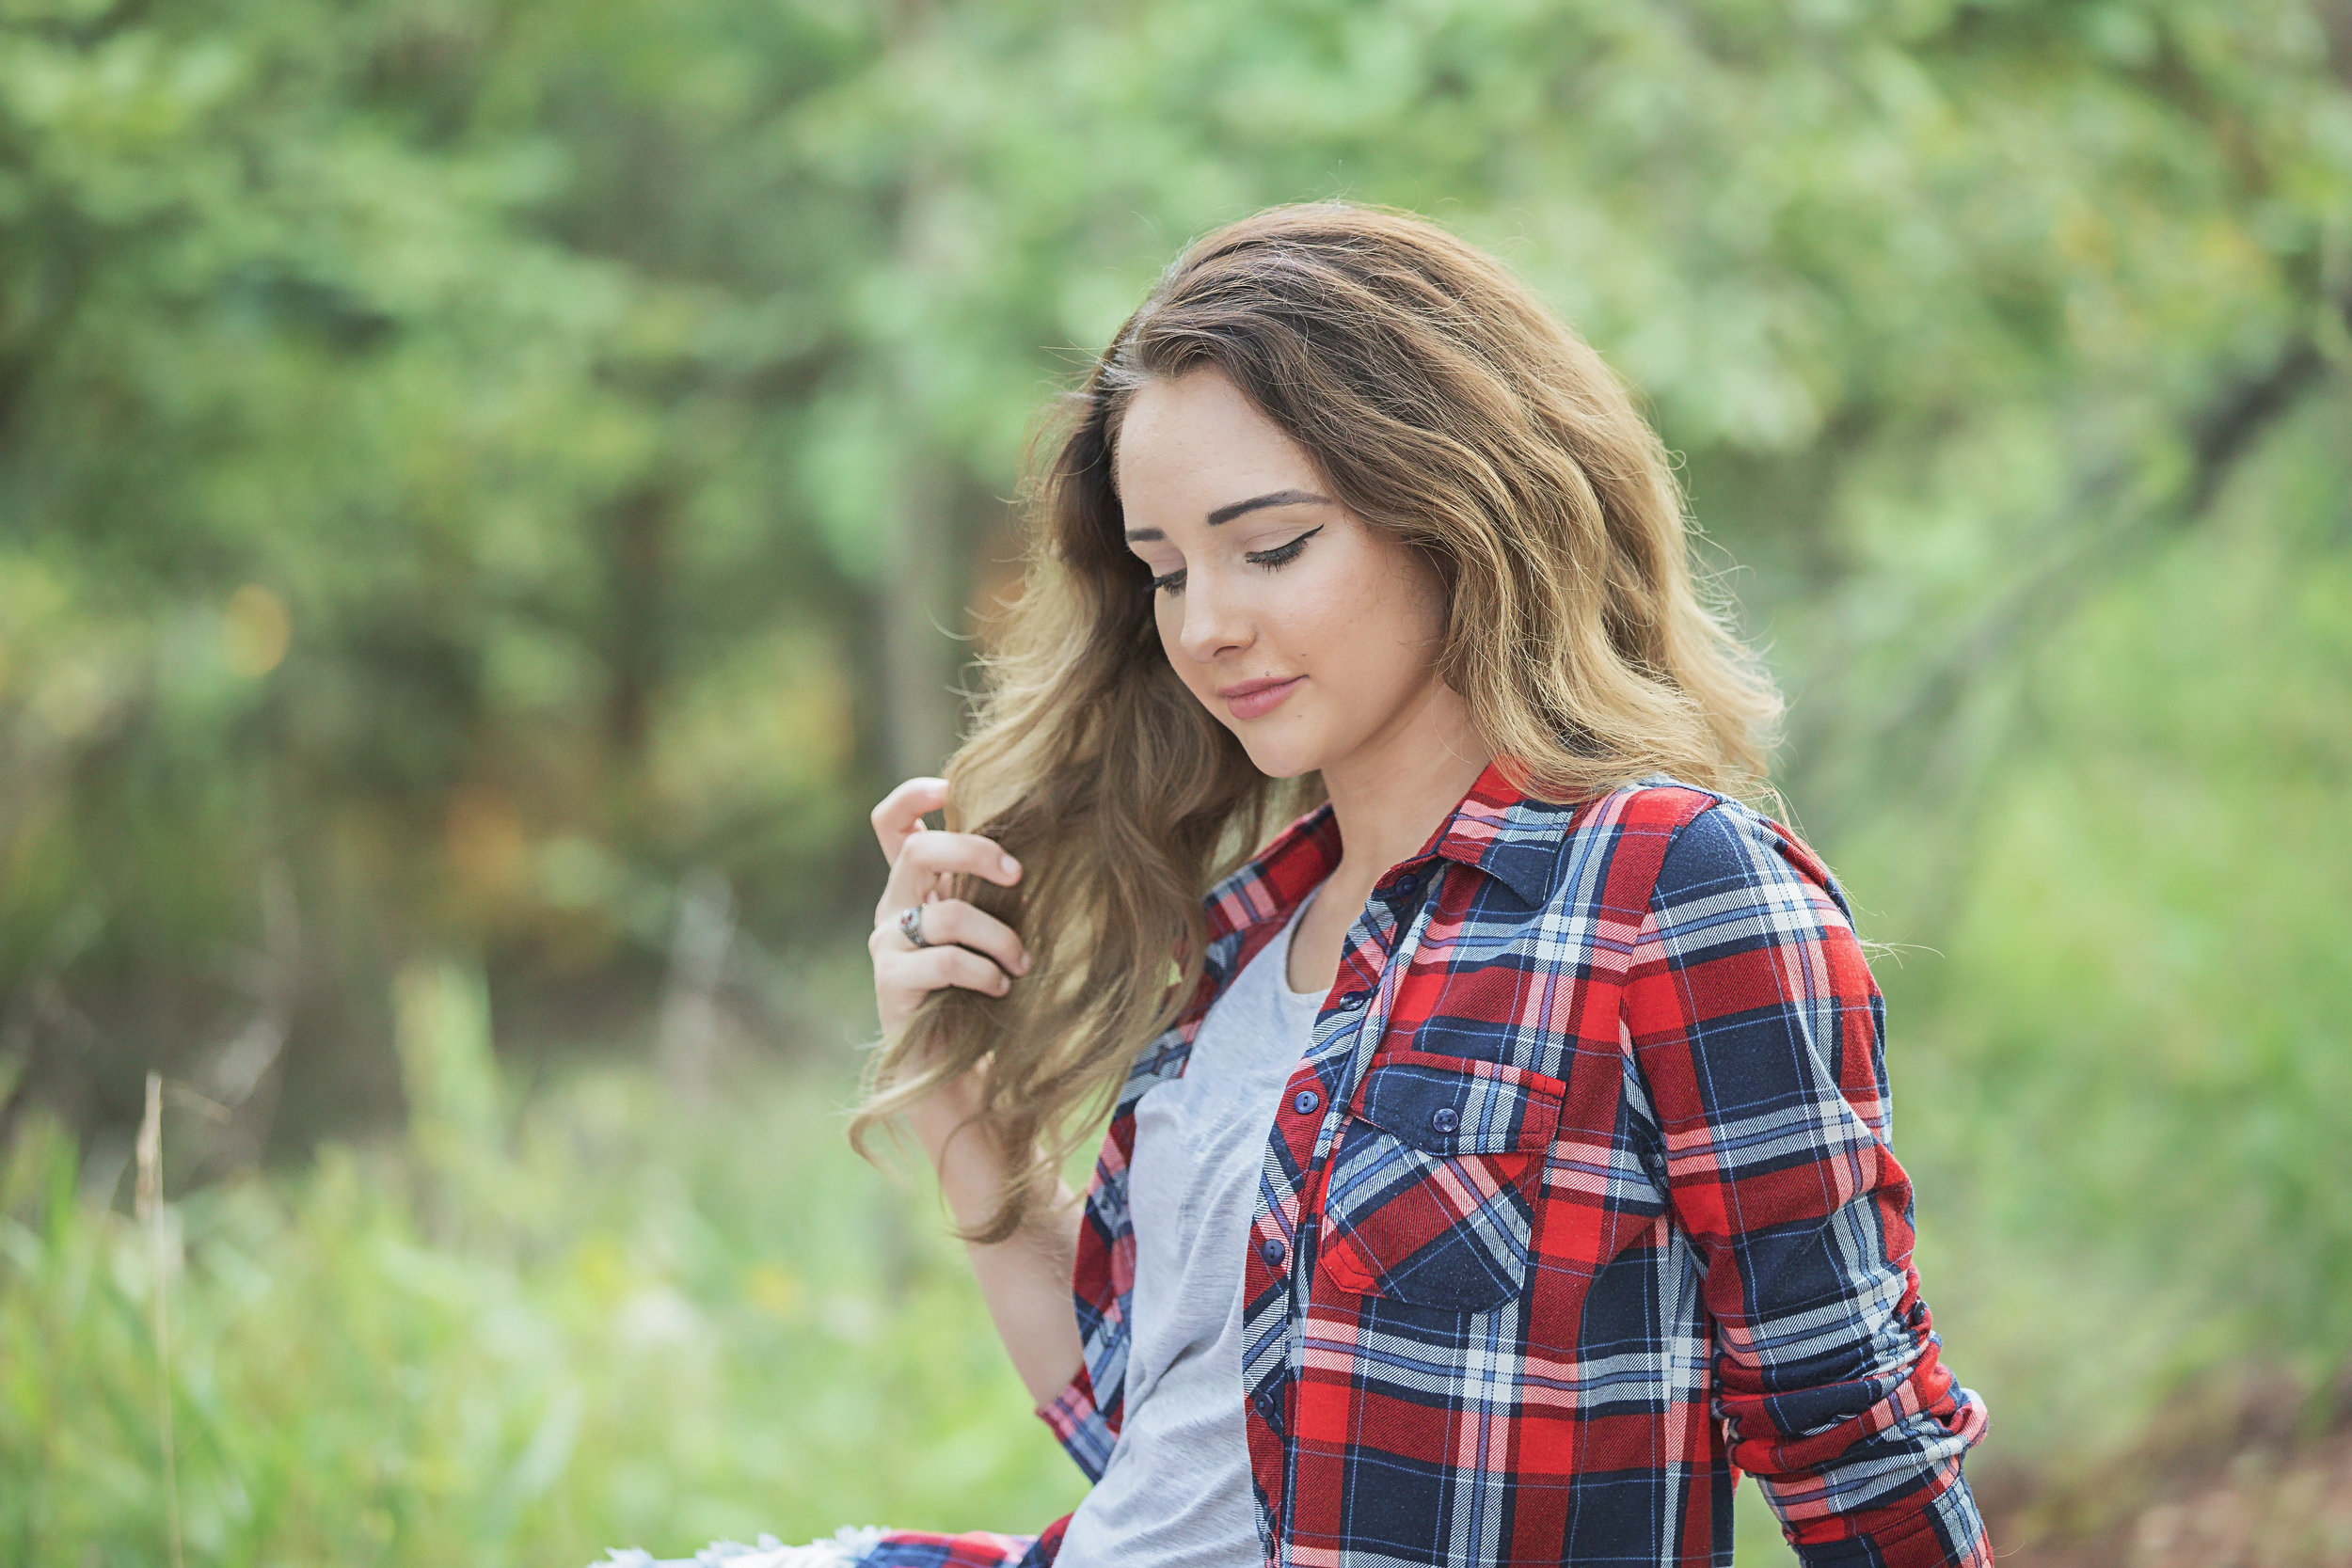 Color image of high school senior girl playing with her long brown hair and looking down. Amanda Lynn Oklahoma Senior Photographer.